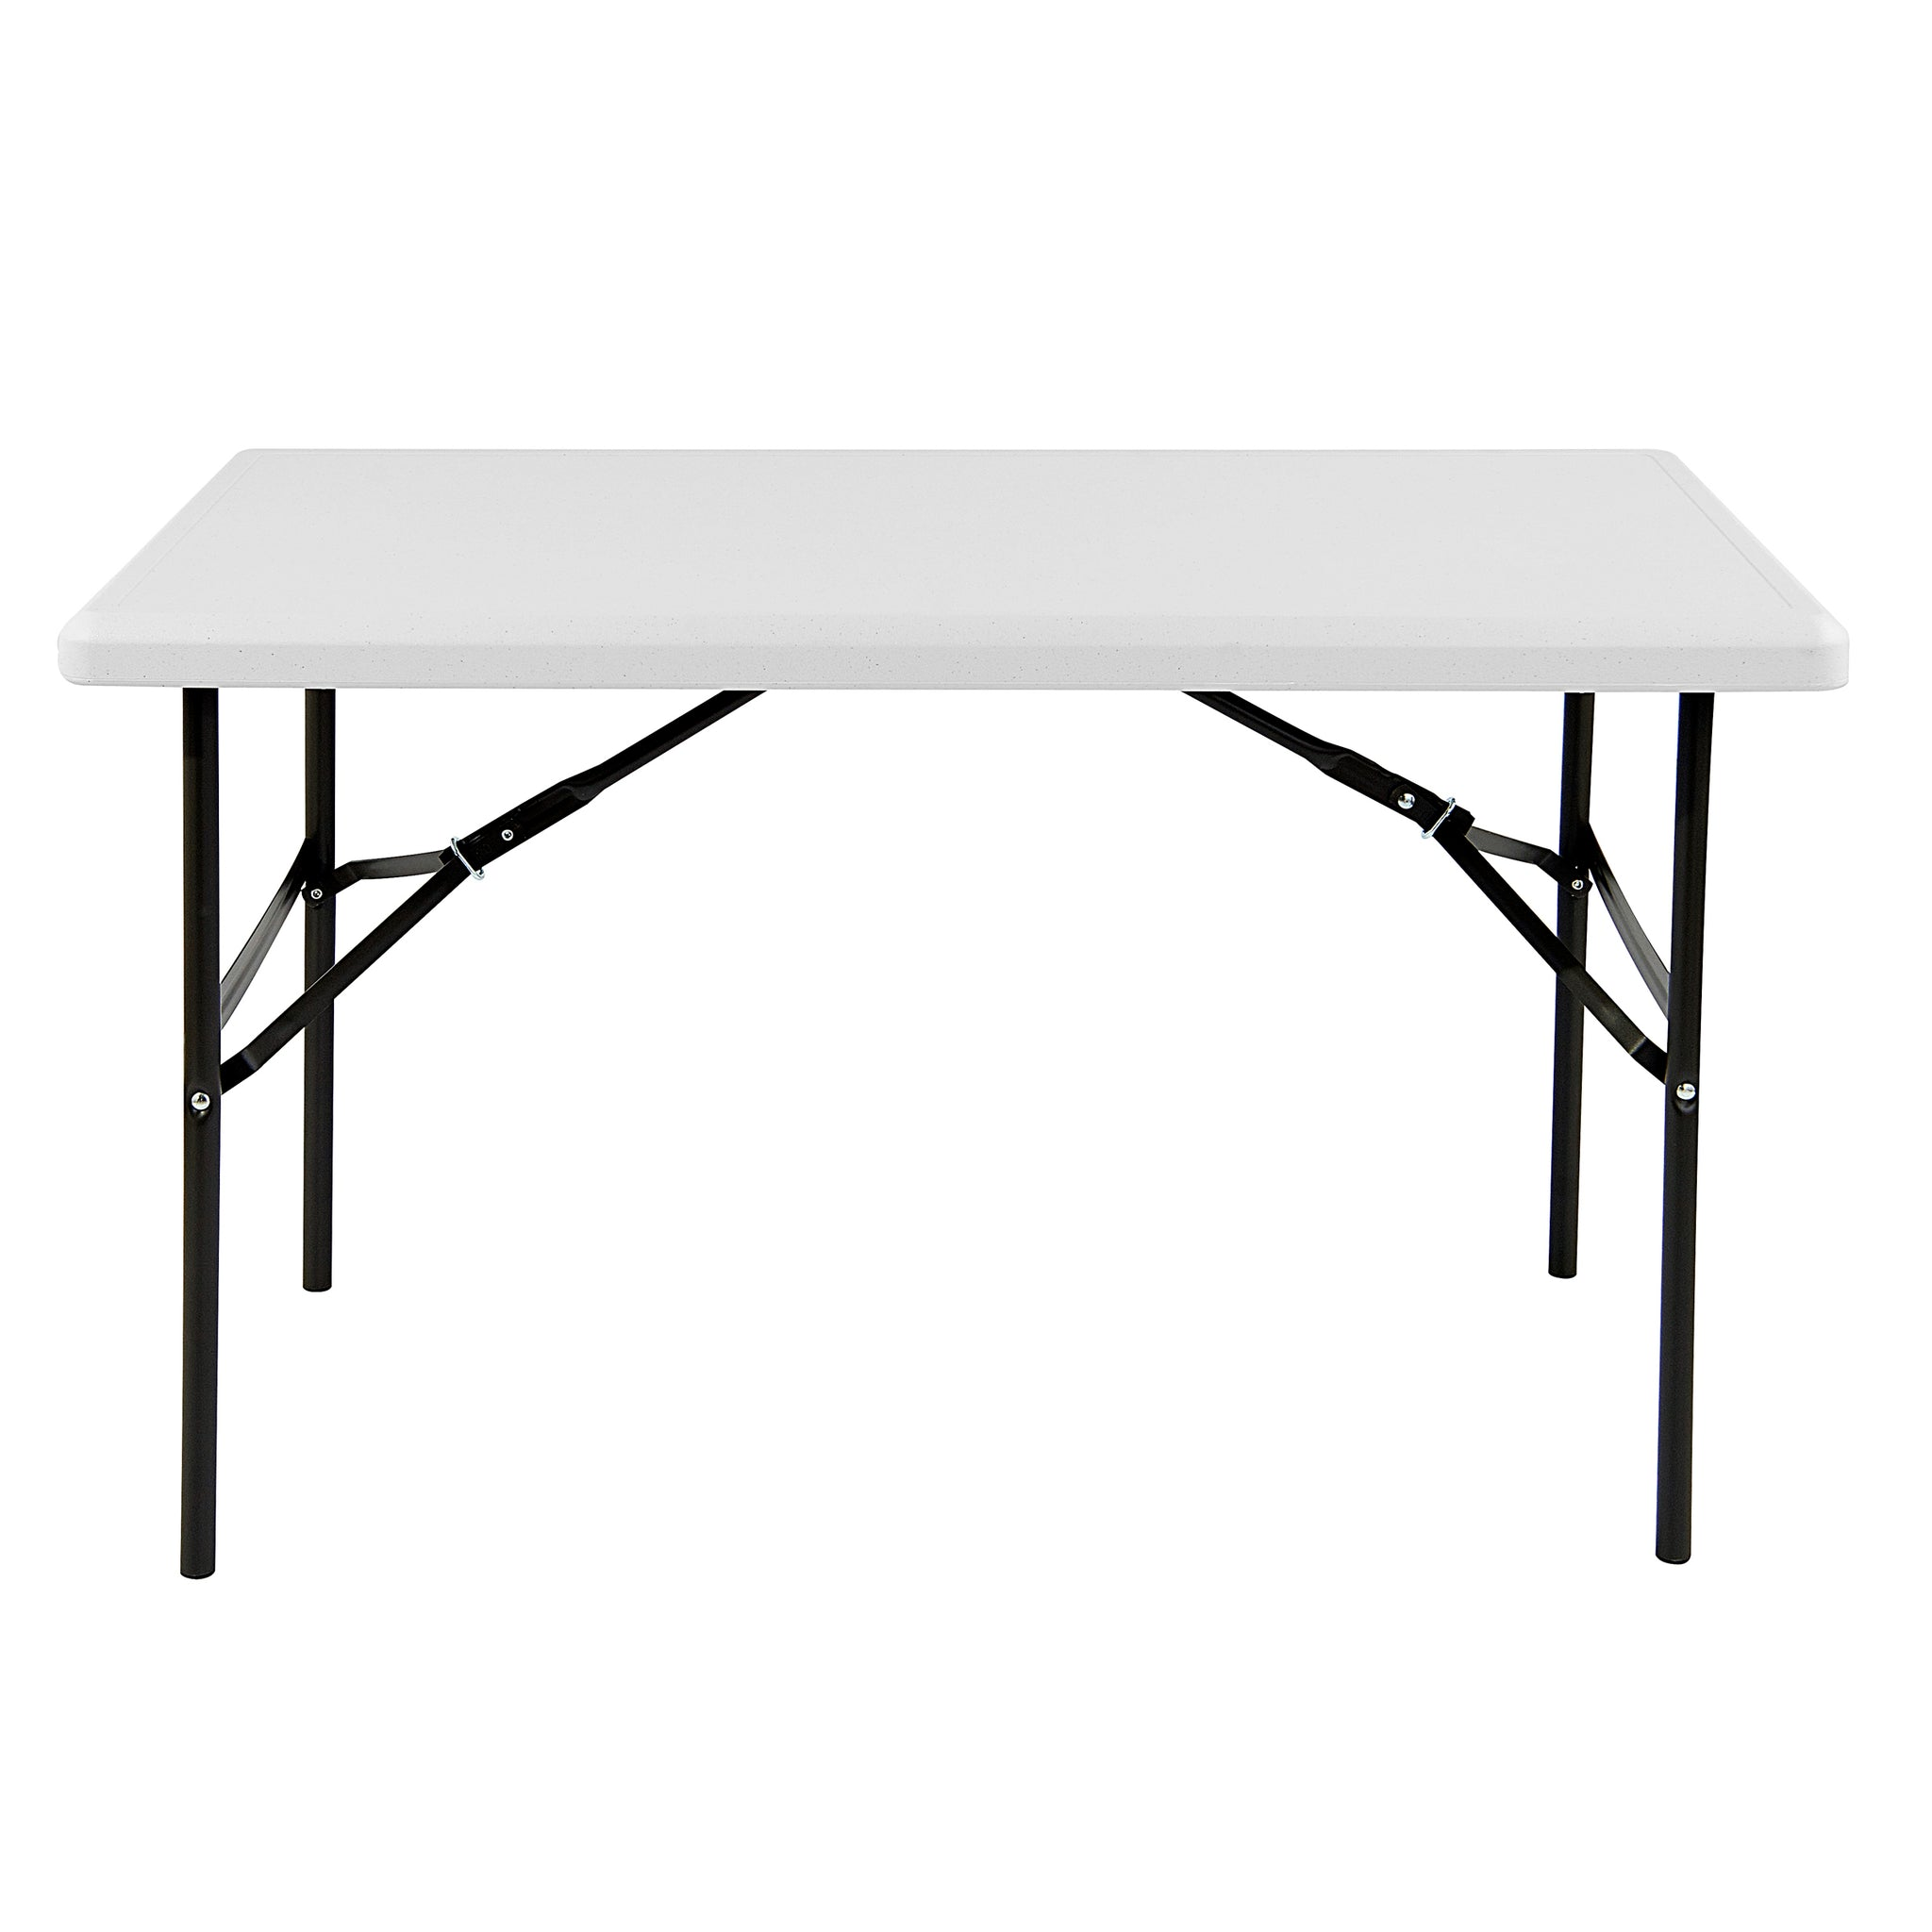 indestructable too folding table 24 x 48 2 colors iceberg